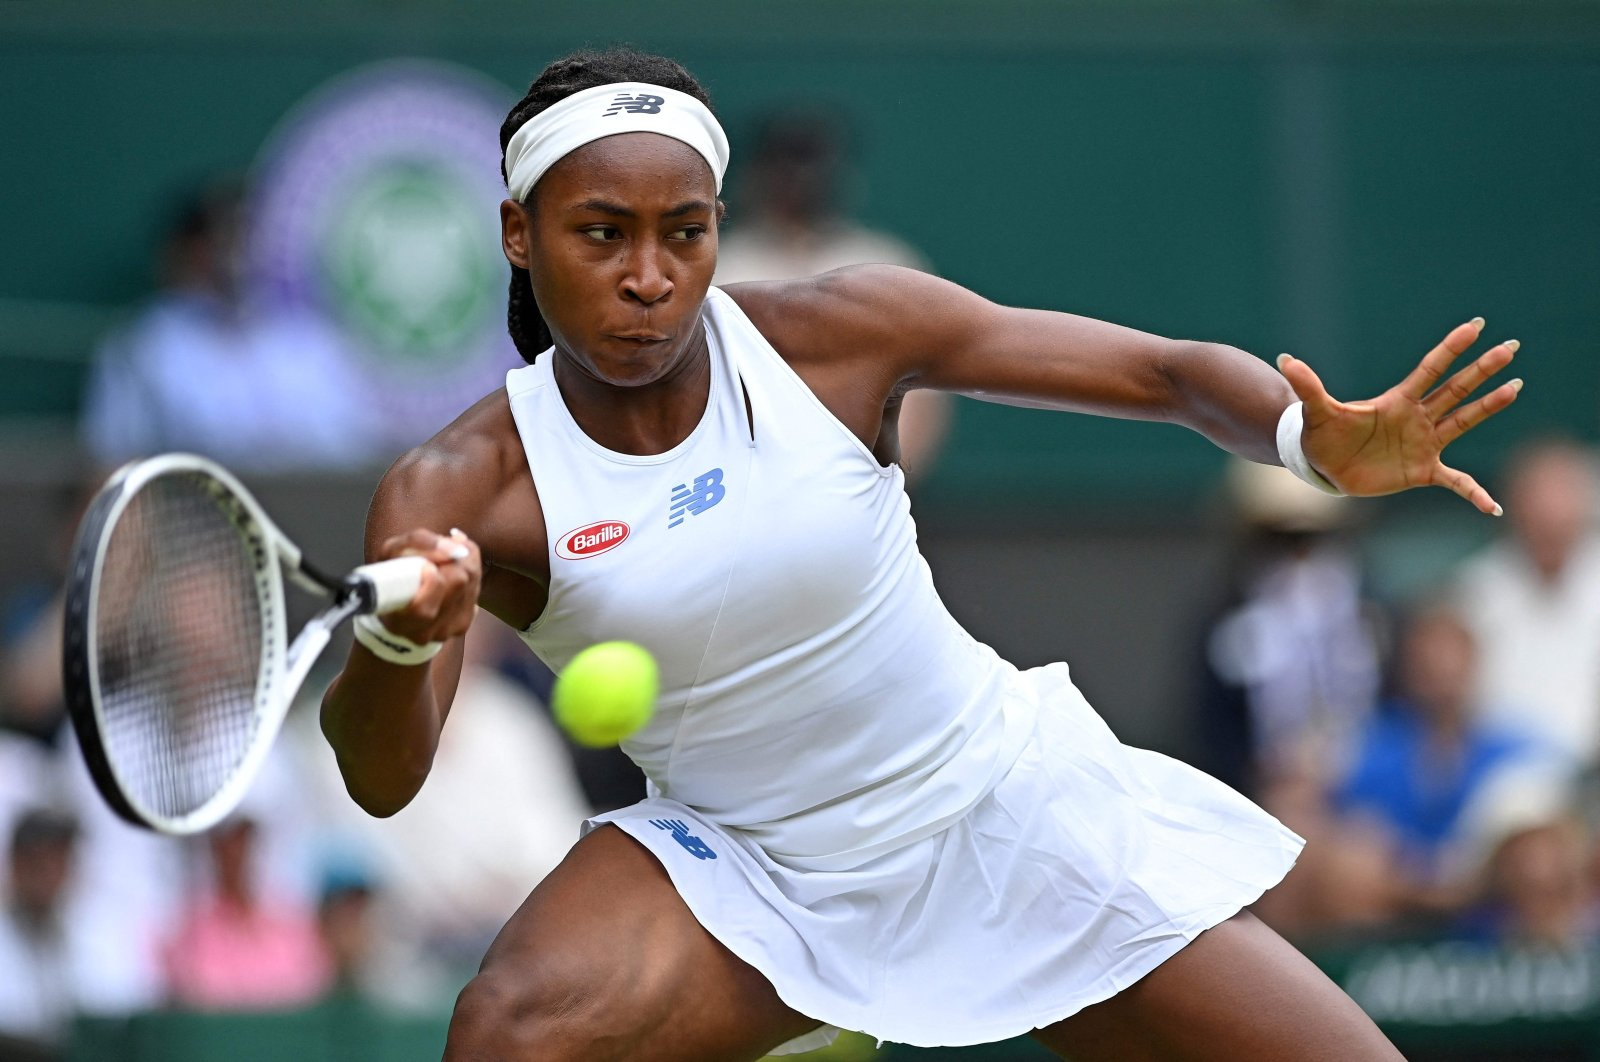 U.S. player Coco Gauff returns against Germany's Angelique Kerber during their Wimbledon women's singles fourth-round match at The All England Tennis Club in Wimbledon, southwest London, July 5, 2021.